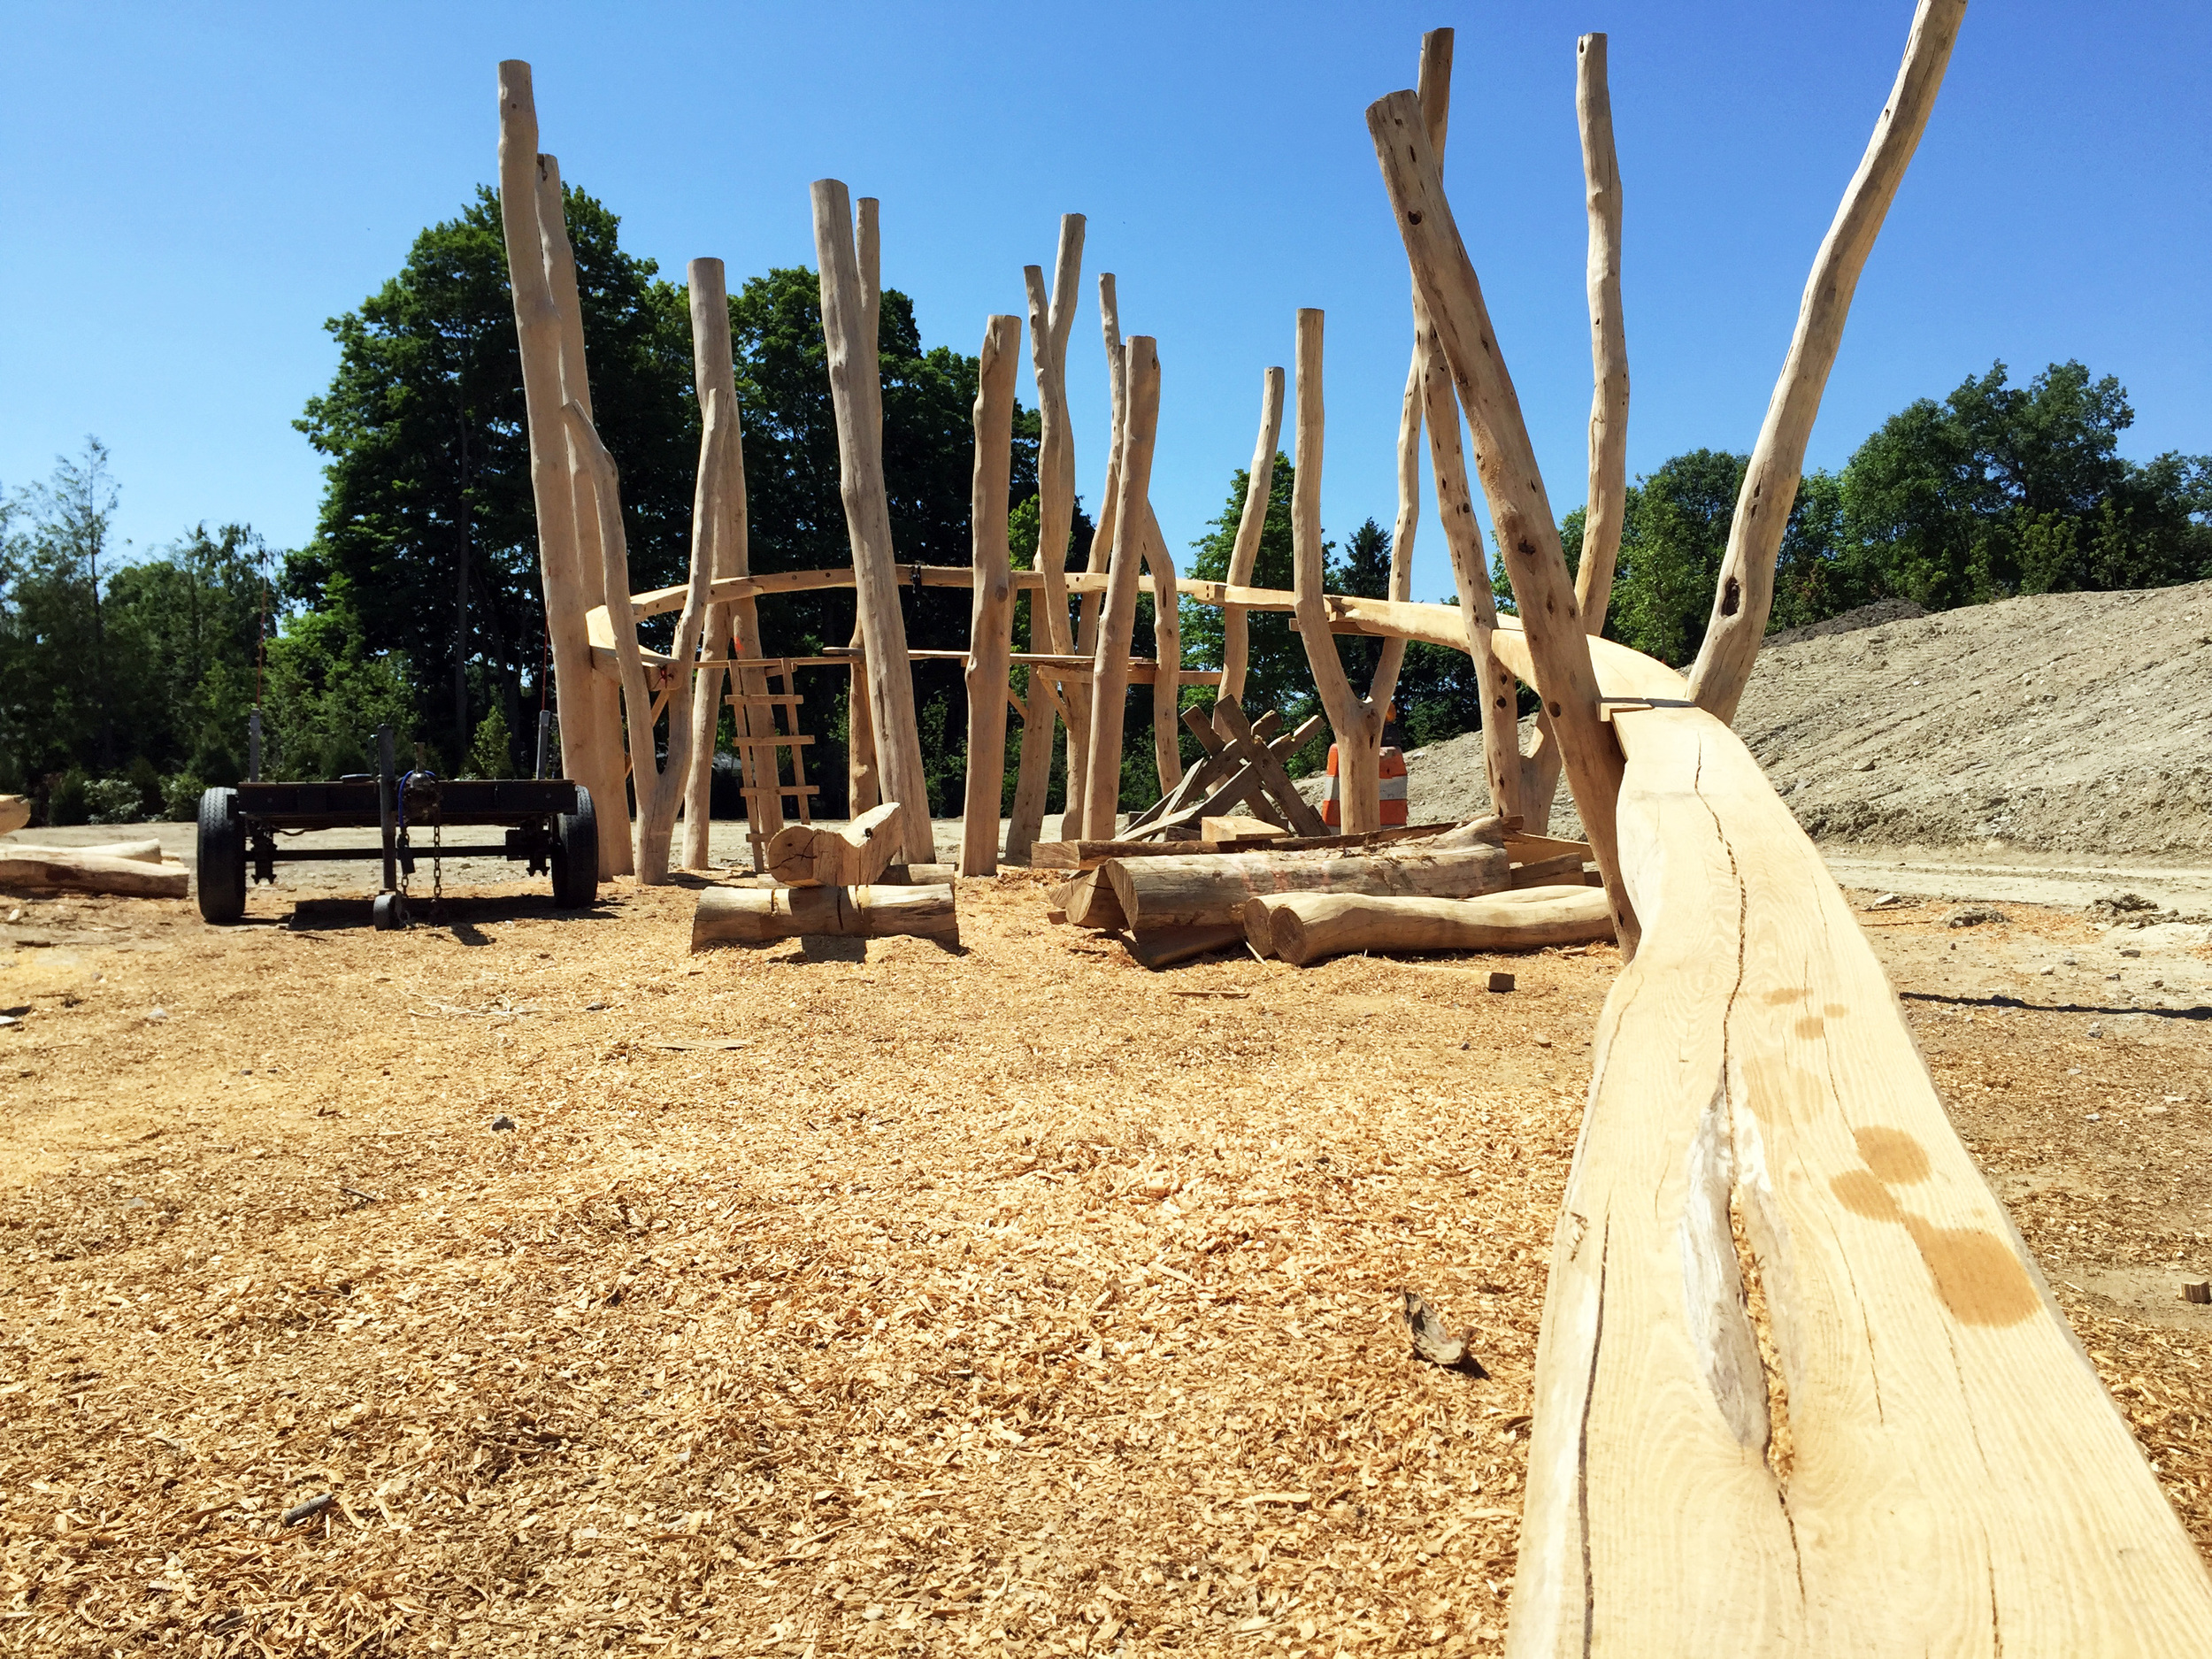 Mitch Ryerson's play structure before the balustrade is installed.